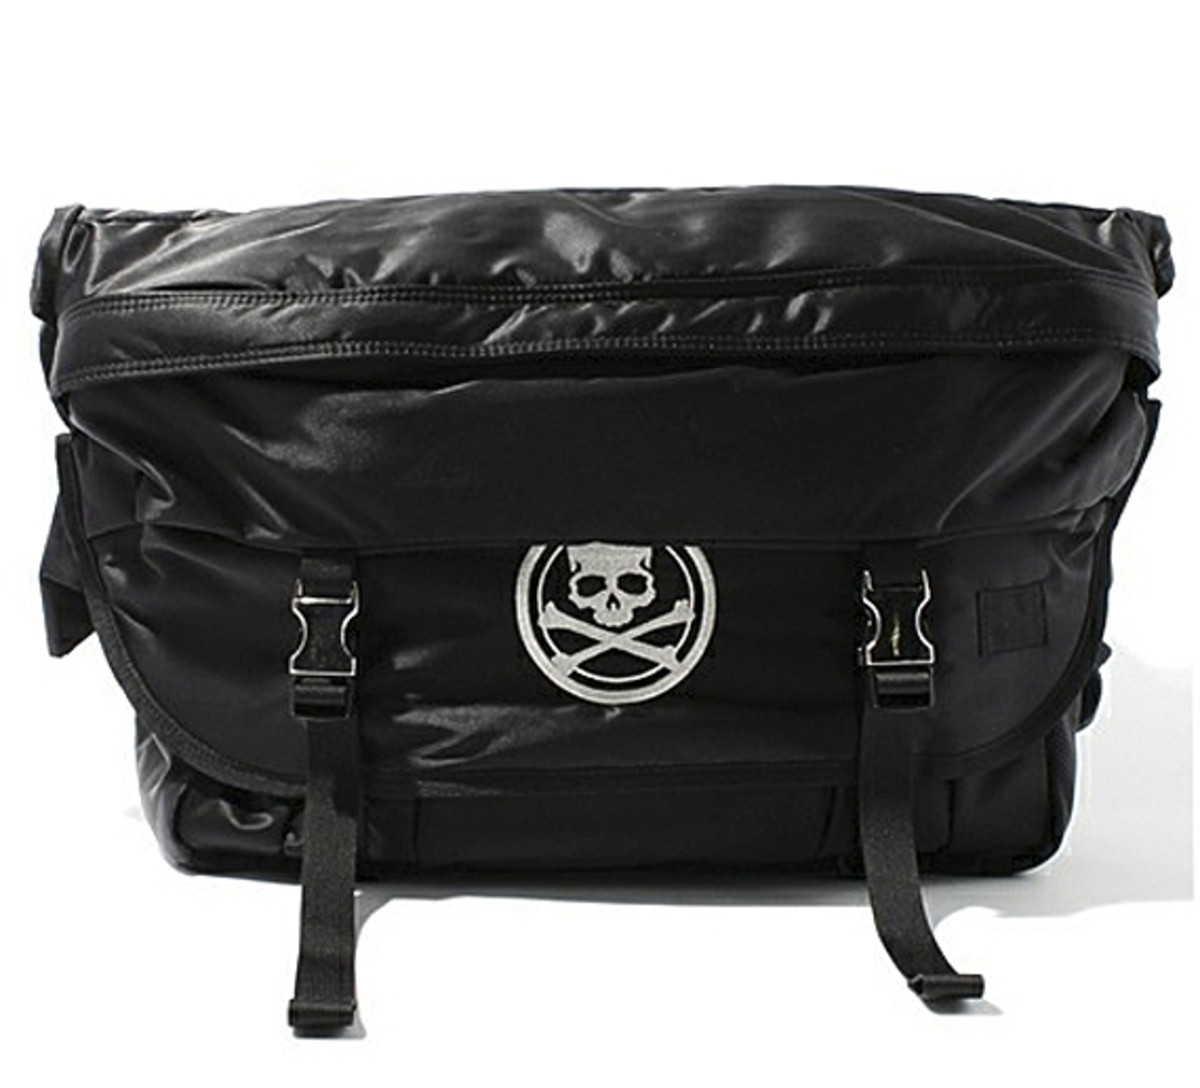 mastermind-JAPAN-PORTER-Messenger-Bag-01